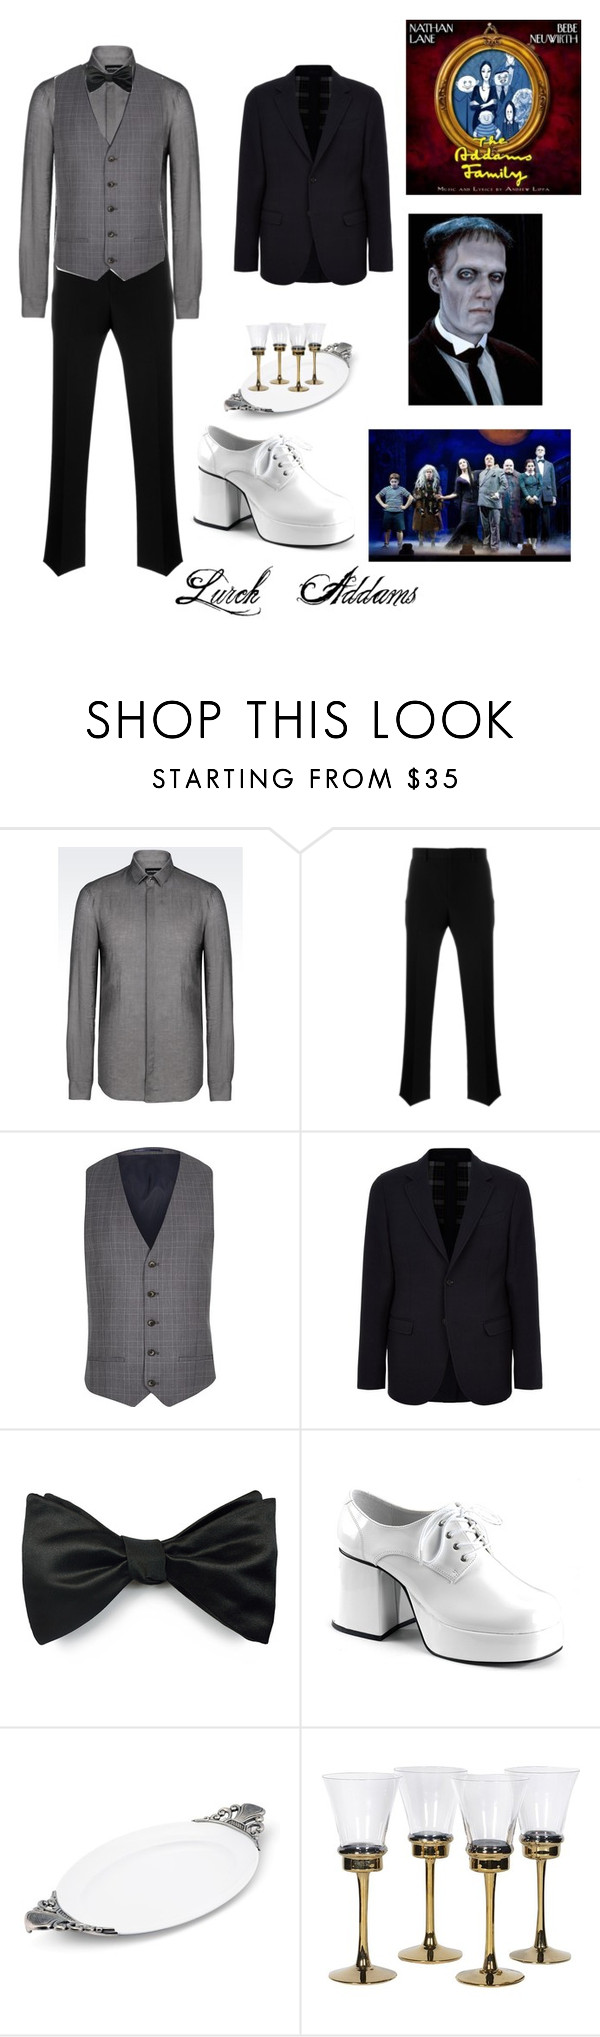 """""""Lurch"""" by falling-is-my-art ❤ liked on Polyvore featuring Emporio Armani, Givenchy, River Island, Alexander McQueen, Louise & Zaid, Vagabond House, men's fashion and menswear"""